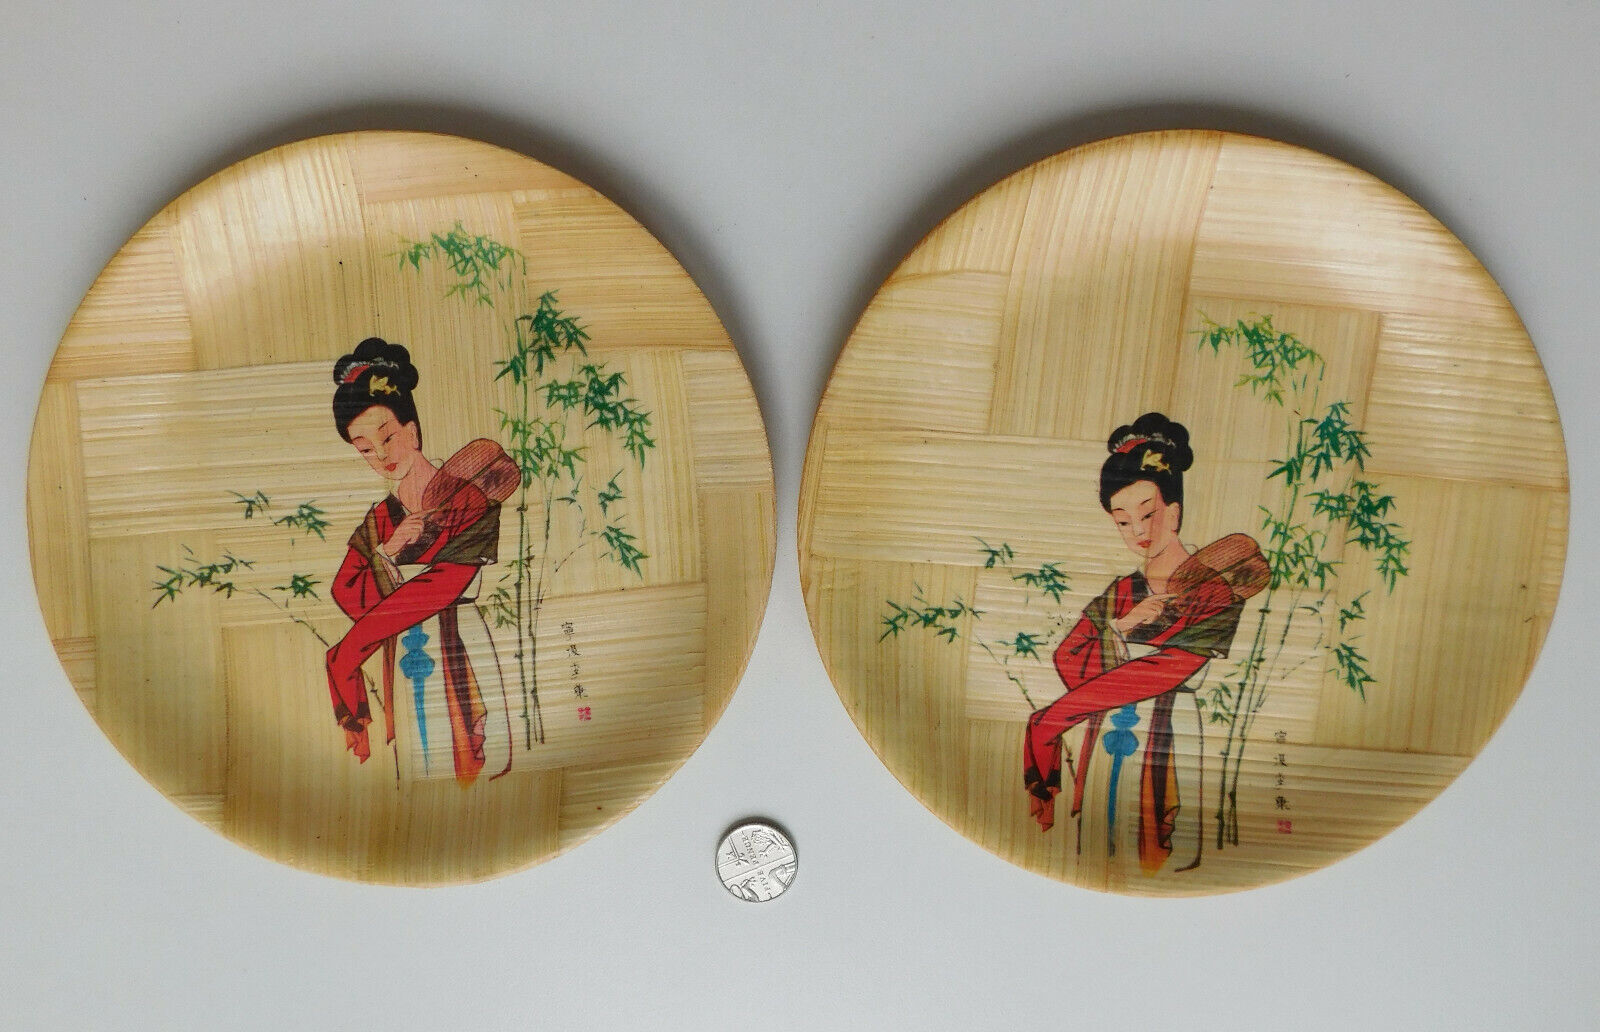 2 vintage bamboo plates pictures of oriental ladies and fans Chinese folk art 6""